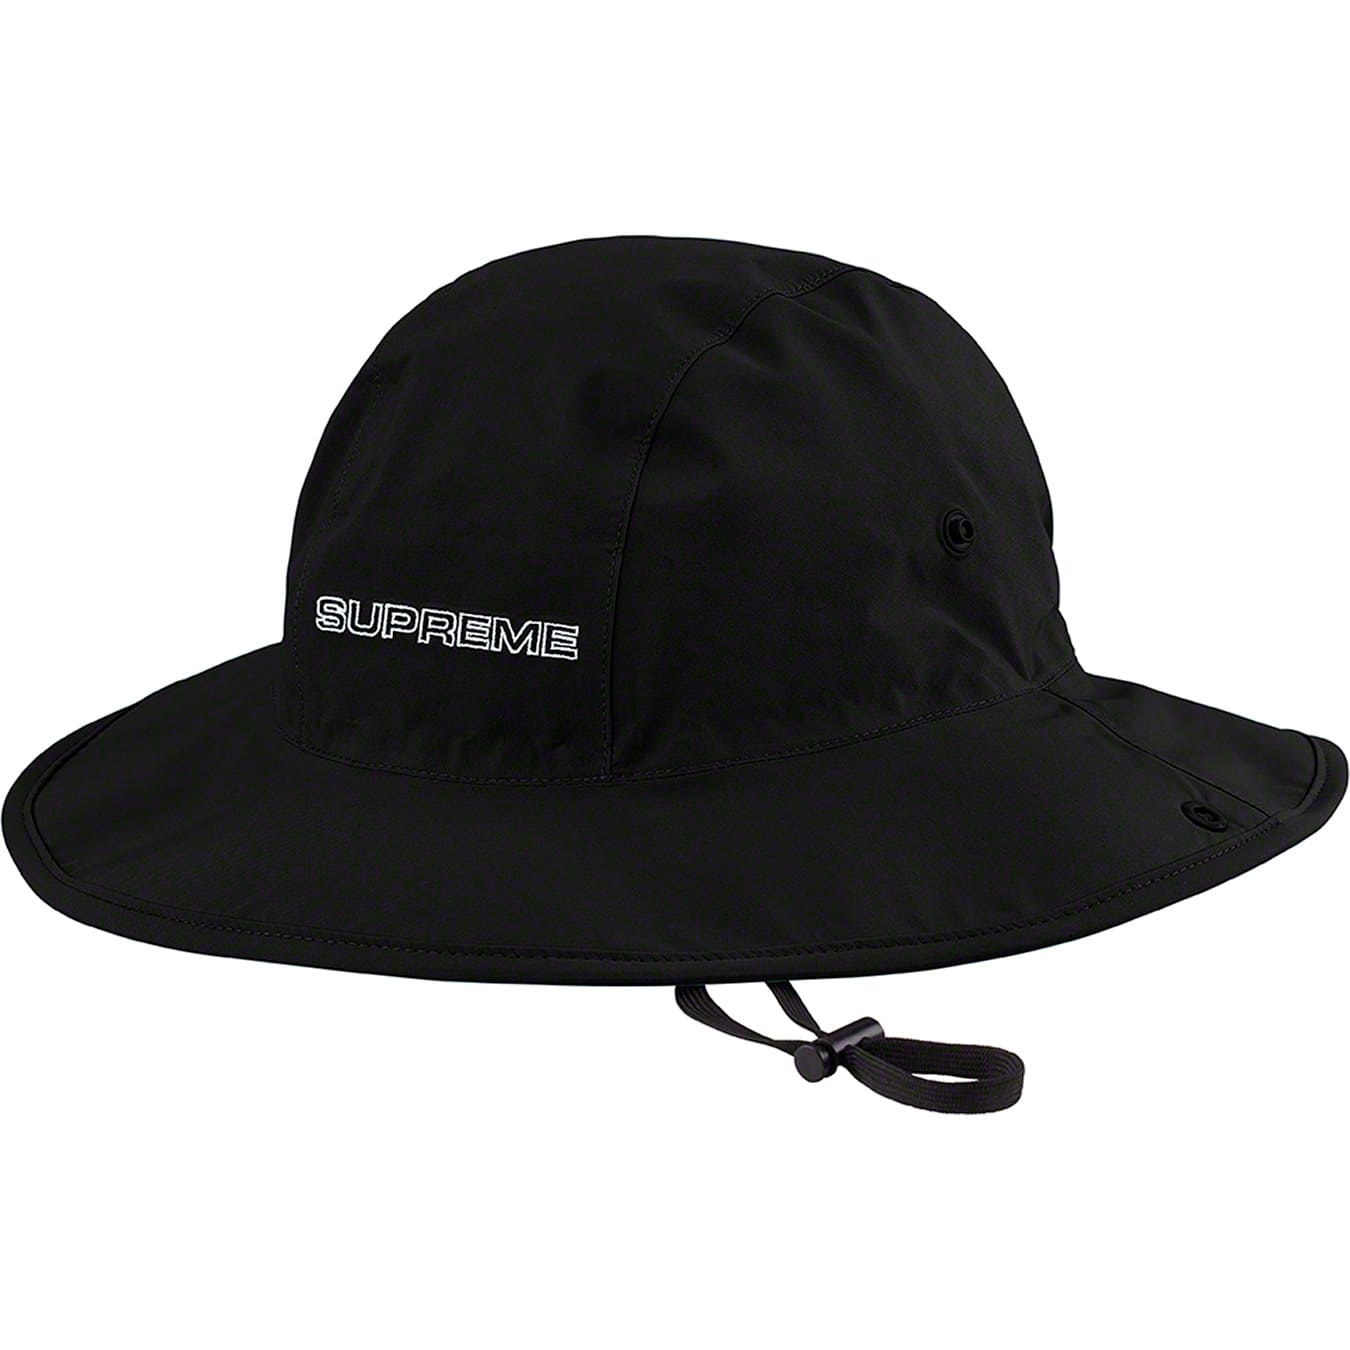 supreme-19aw-19fw-fall-winter-gore-tex-rain-hat